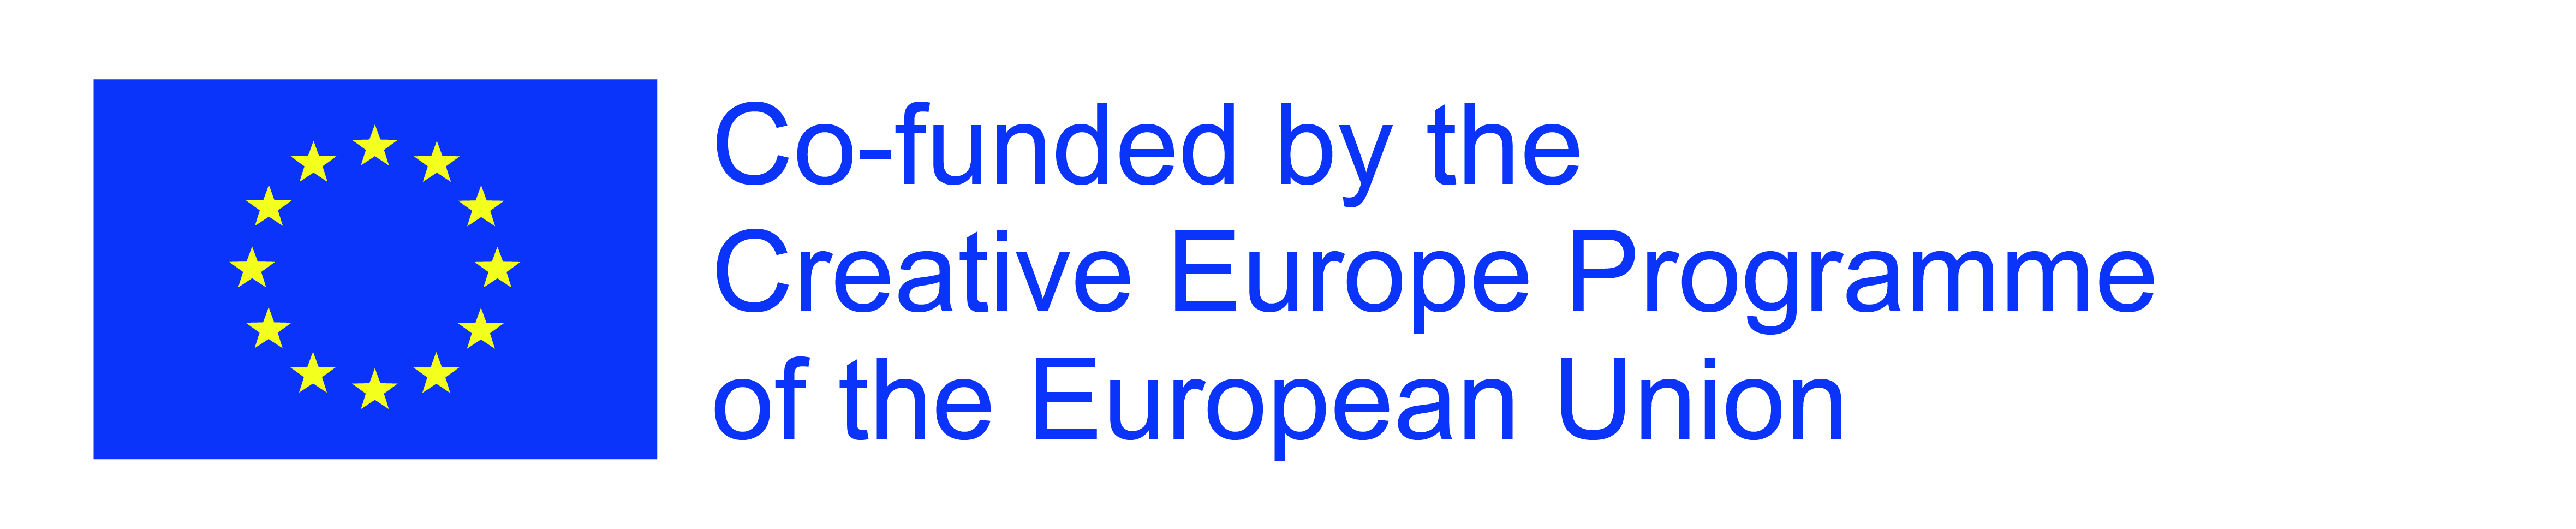 MoSaIC; Project Co-funded by the Creative Europe Programme of the European Union